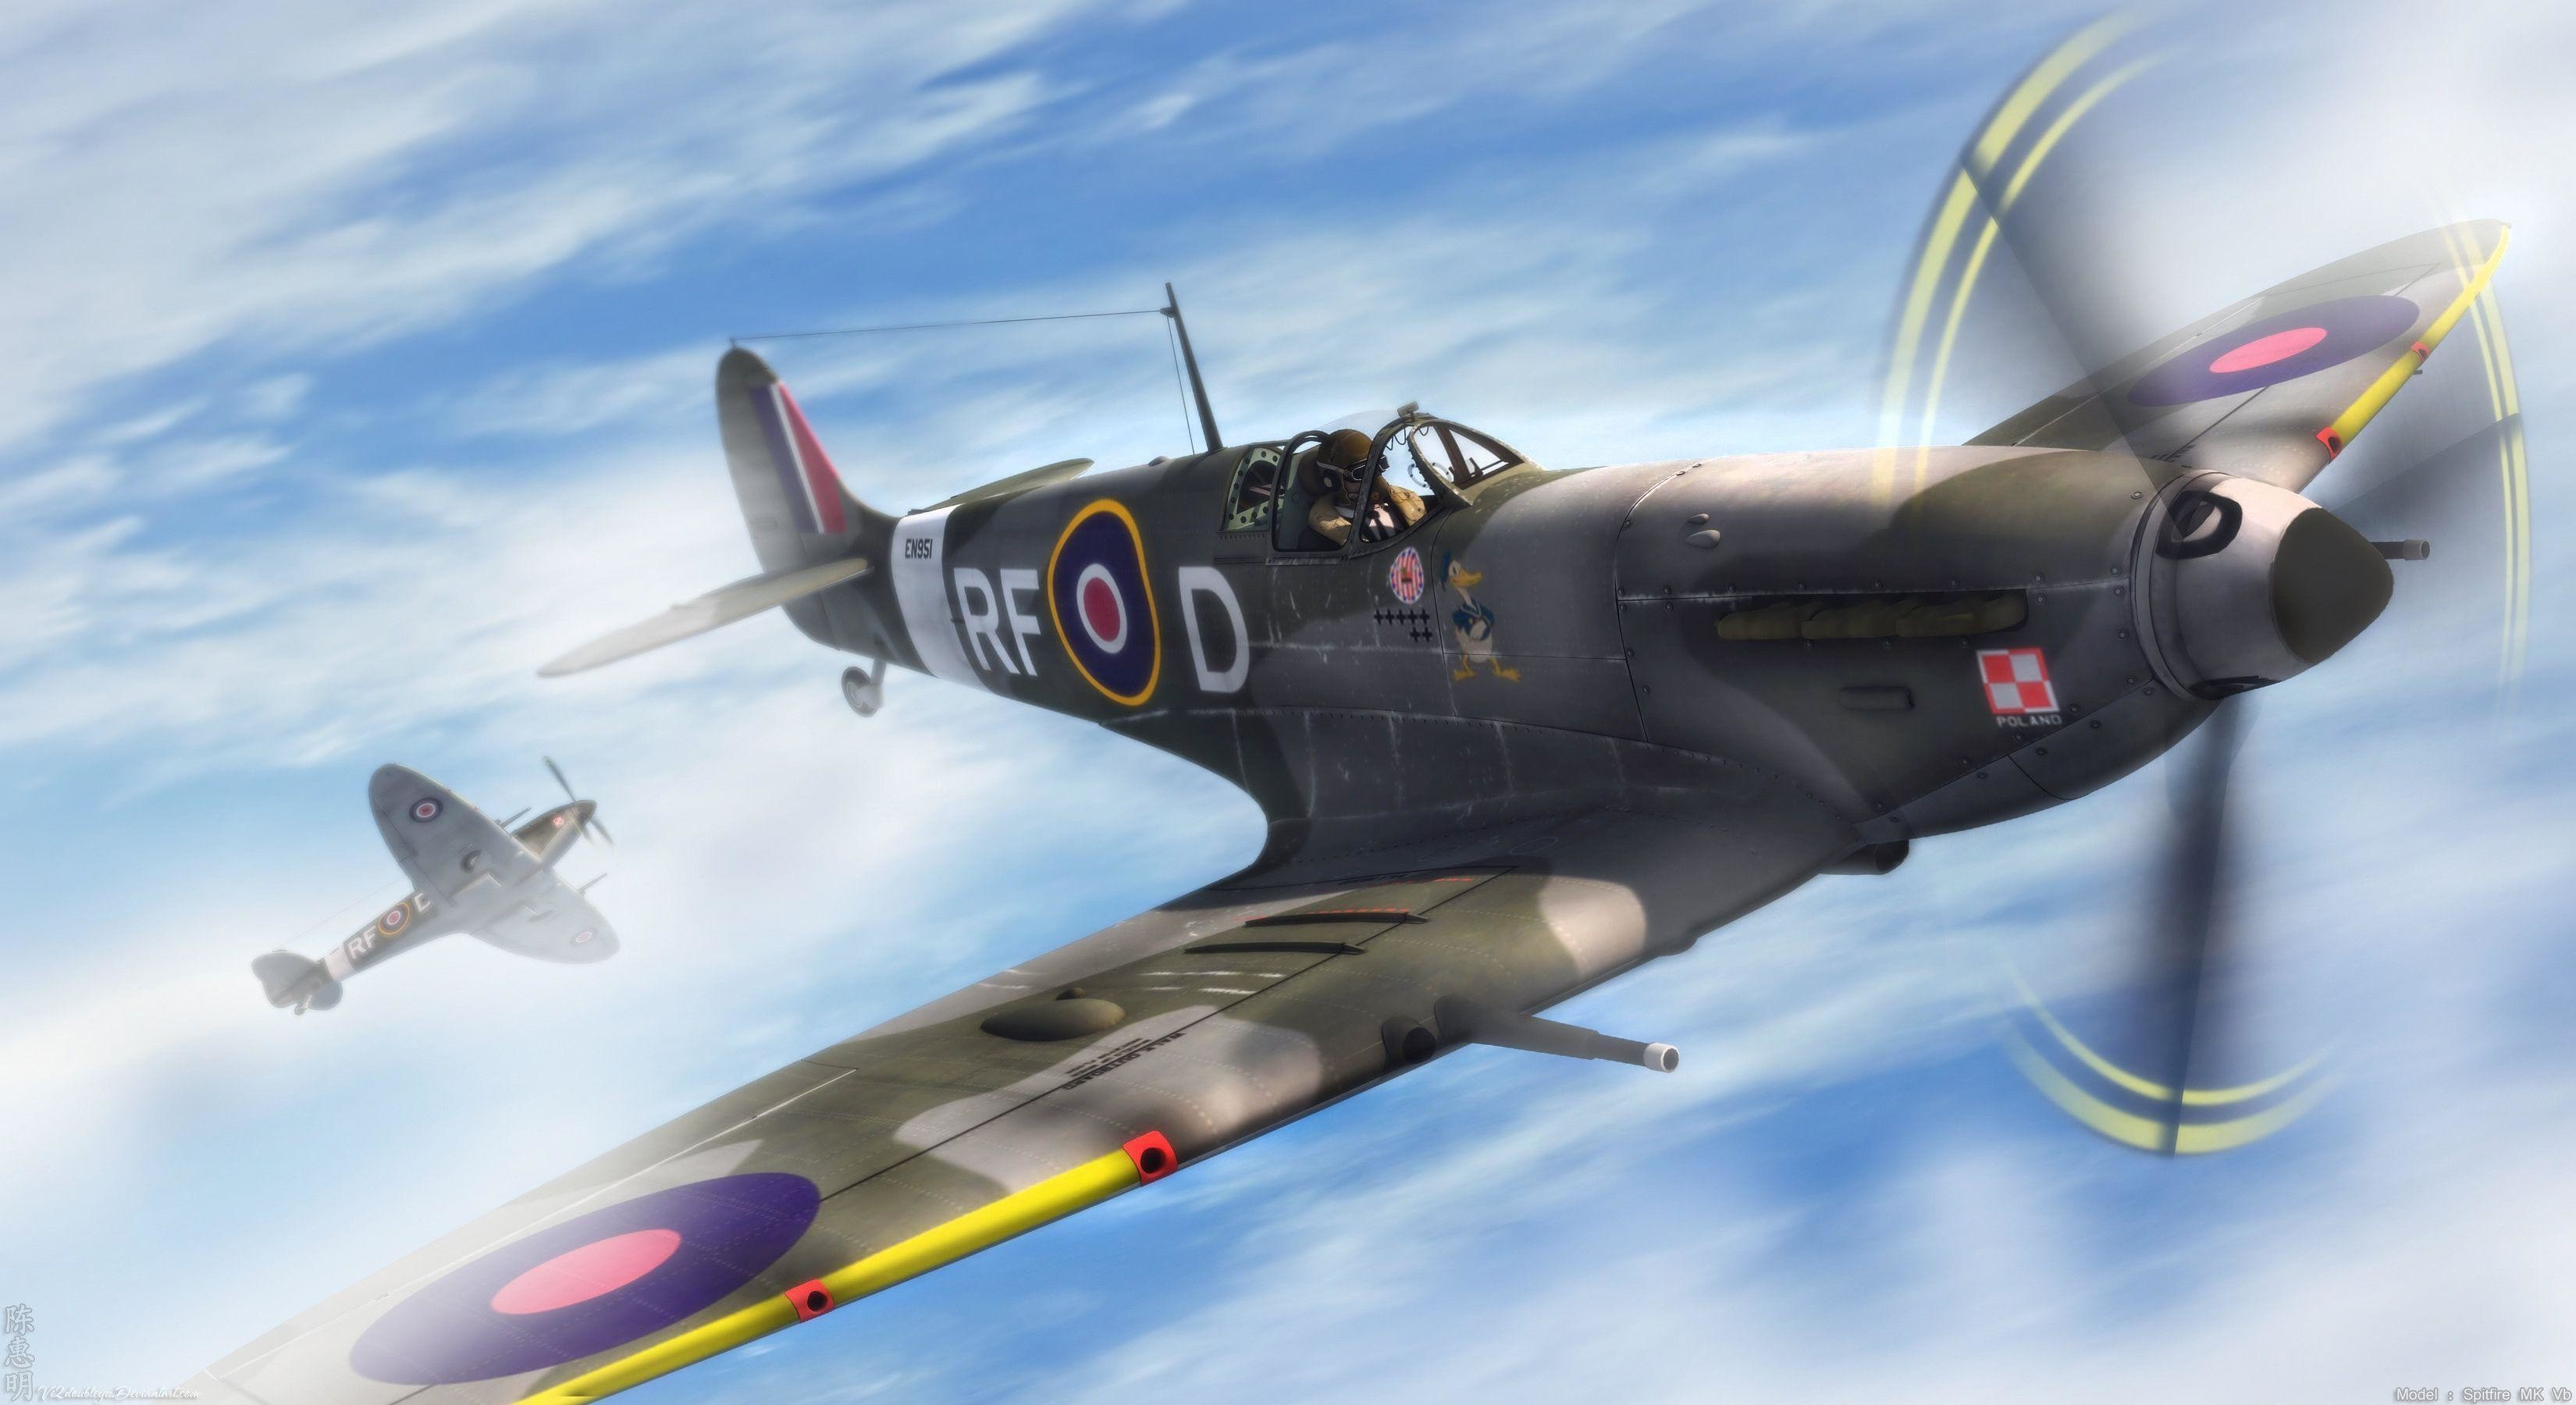 3300x1800 15 Supermarine Spitfire Wallpapers | Supermarine Spitfire Backgrounds